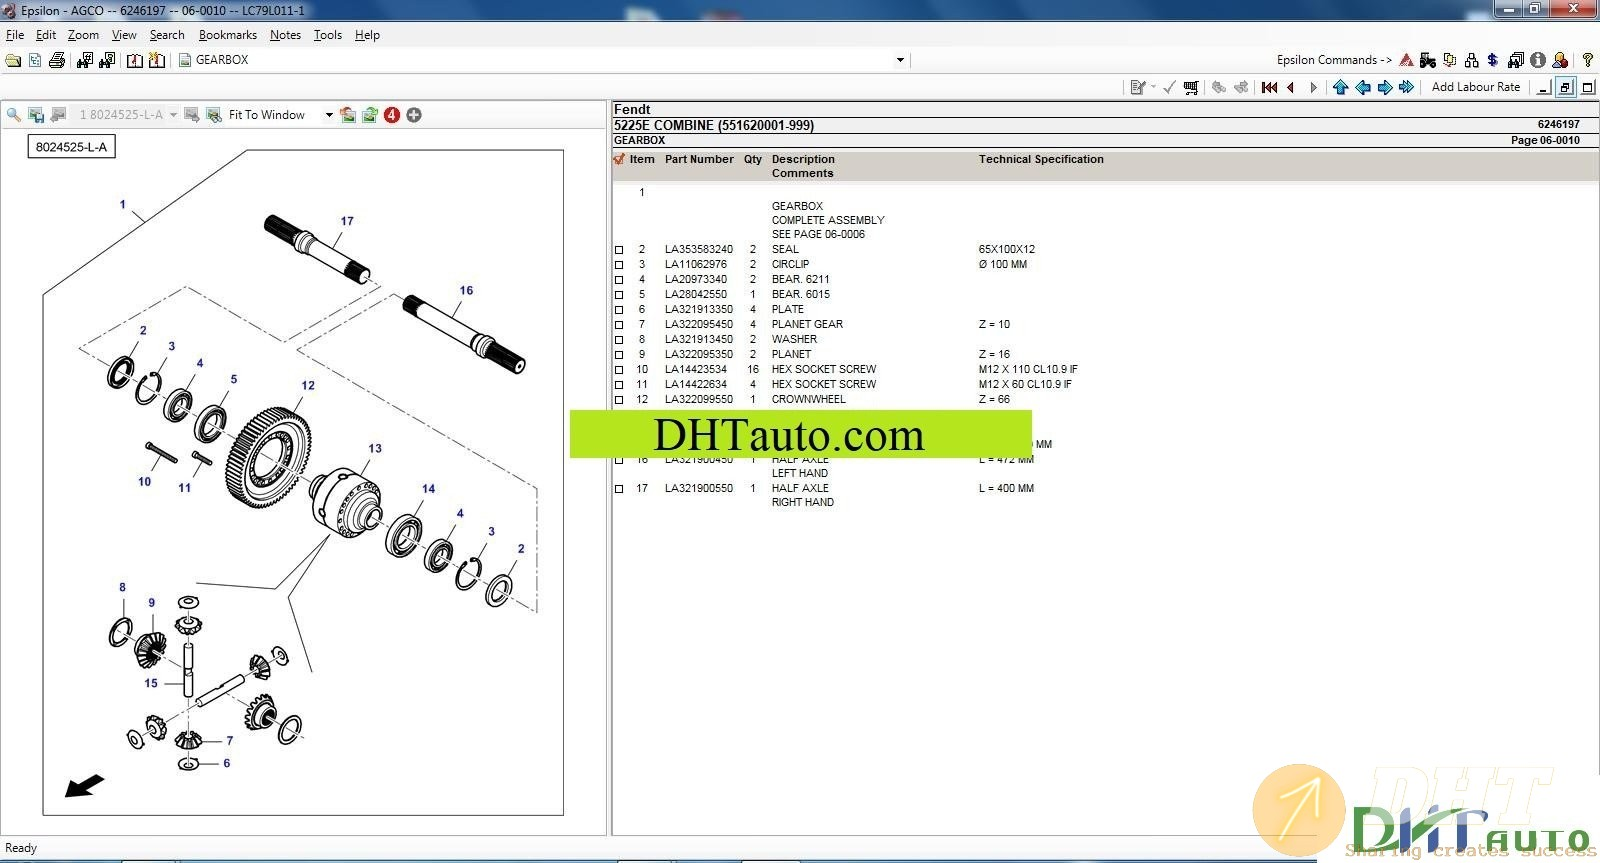 AGCO-Fendt-Parts-Catalogue-NA-Full-Keys-06-2017-7.jpg